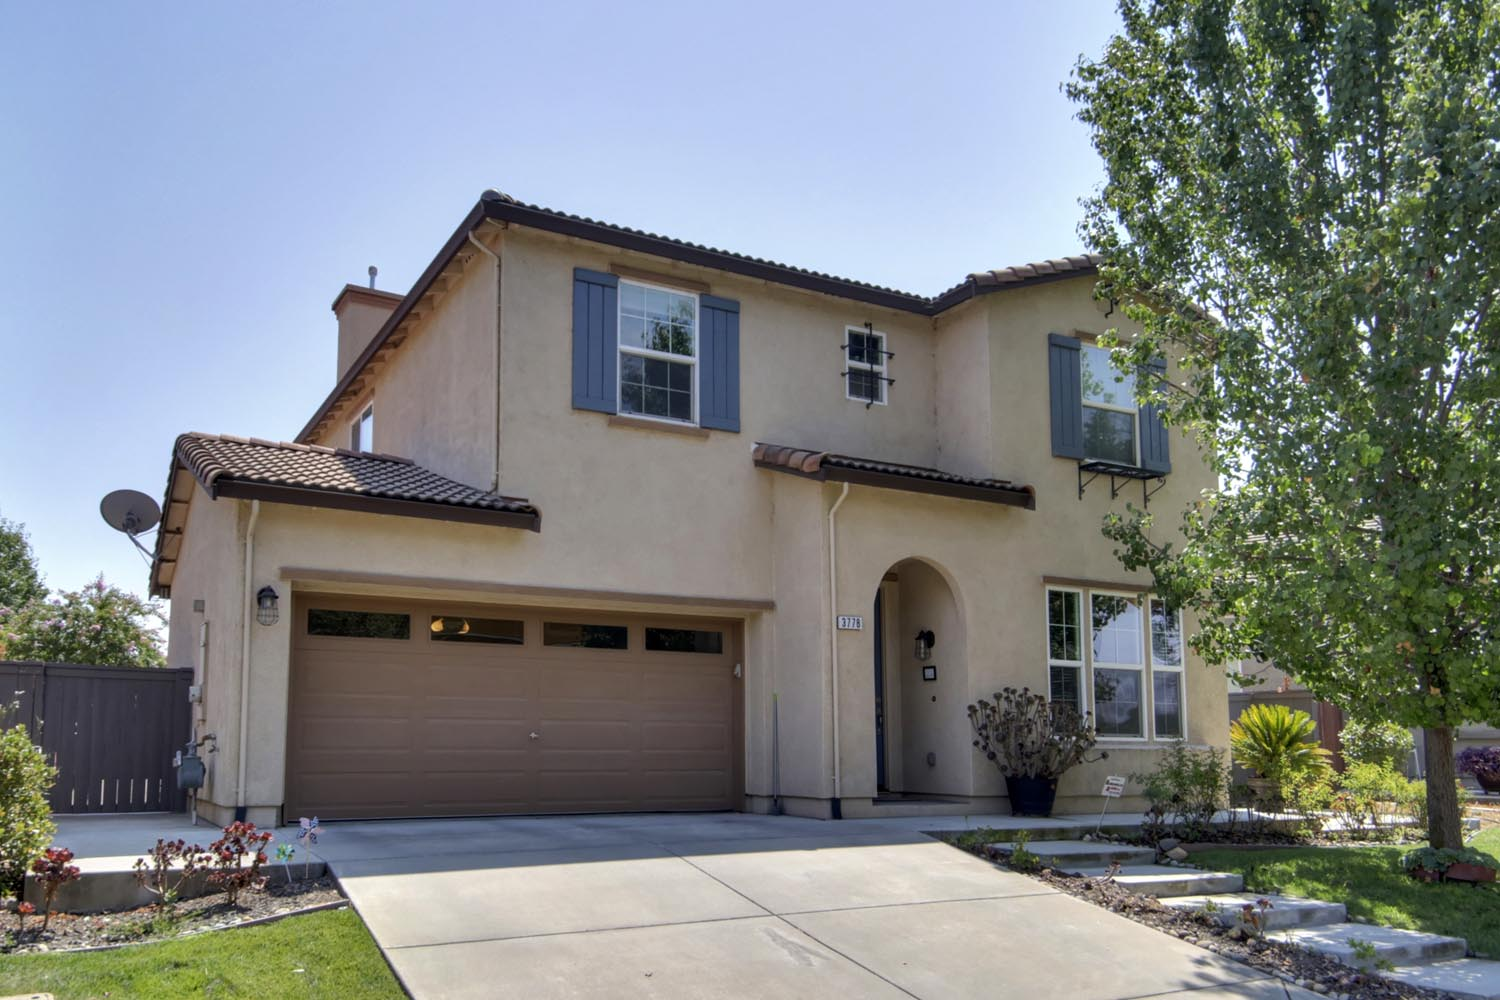 Newer Home in Willow Creek Natomas Open Sunday!